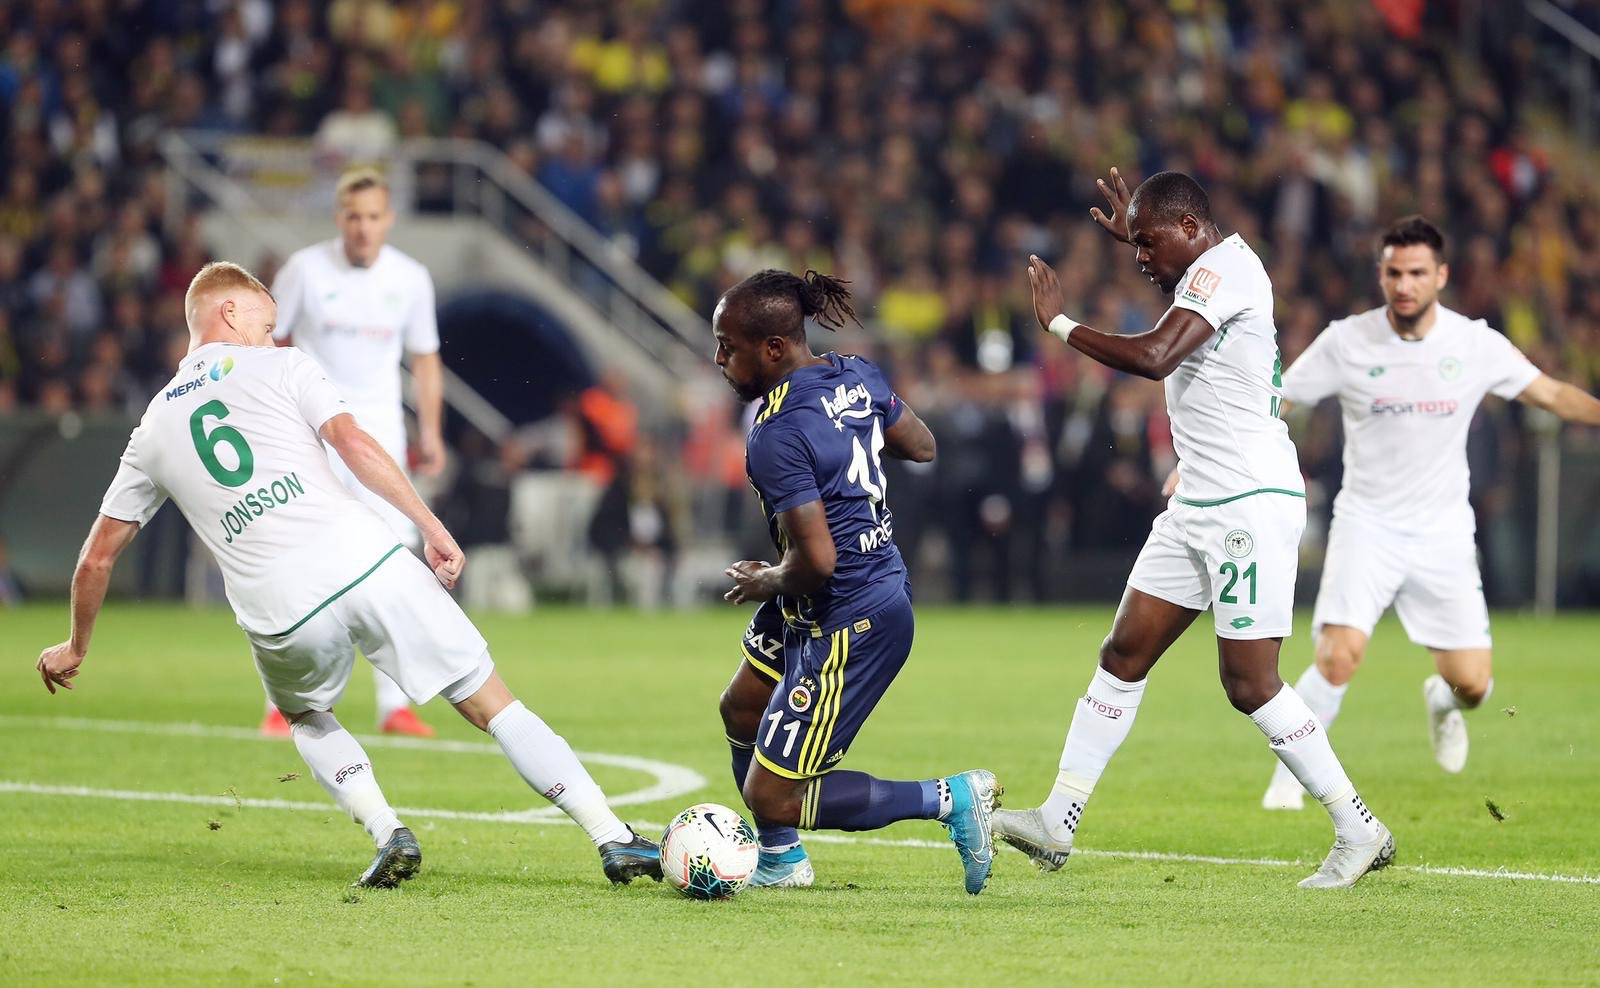 Moses Happy To Make Fenerbahce Return After Injury Layoff